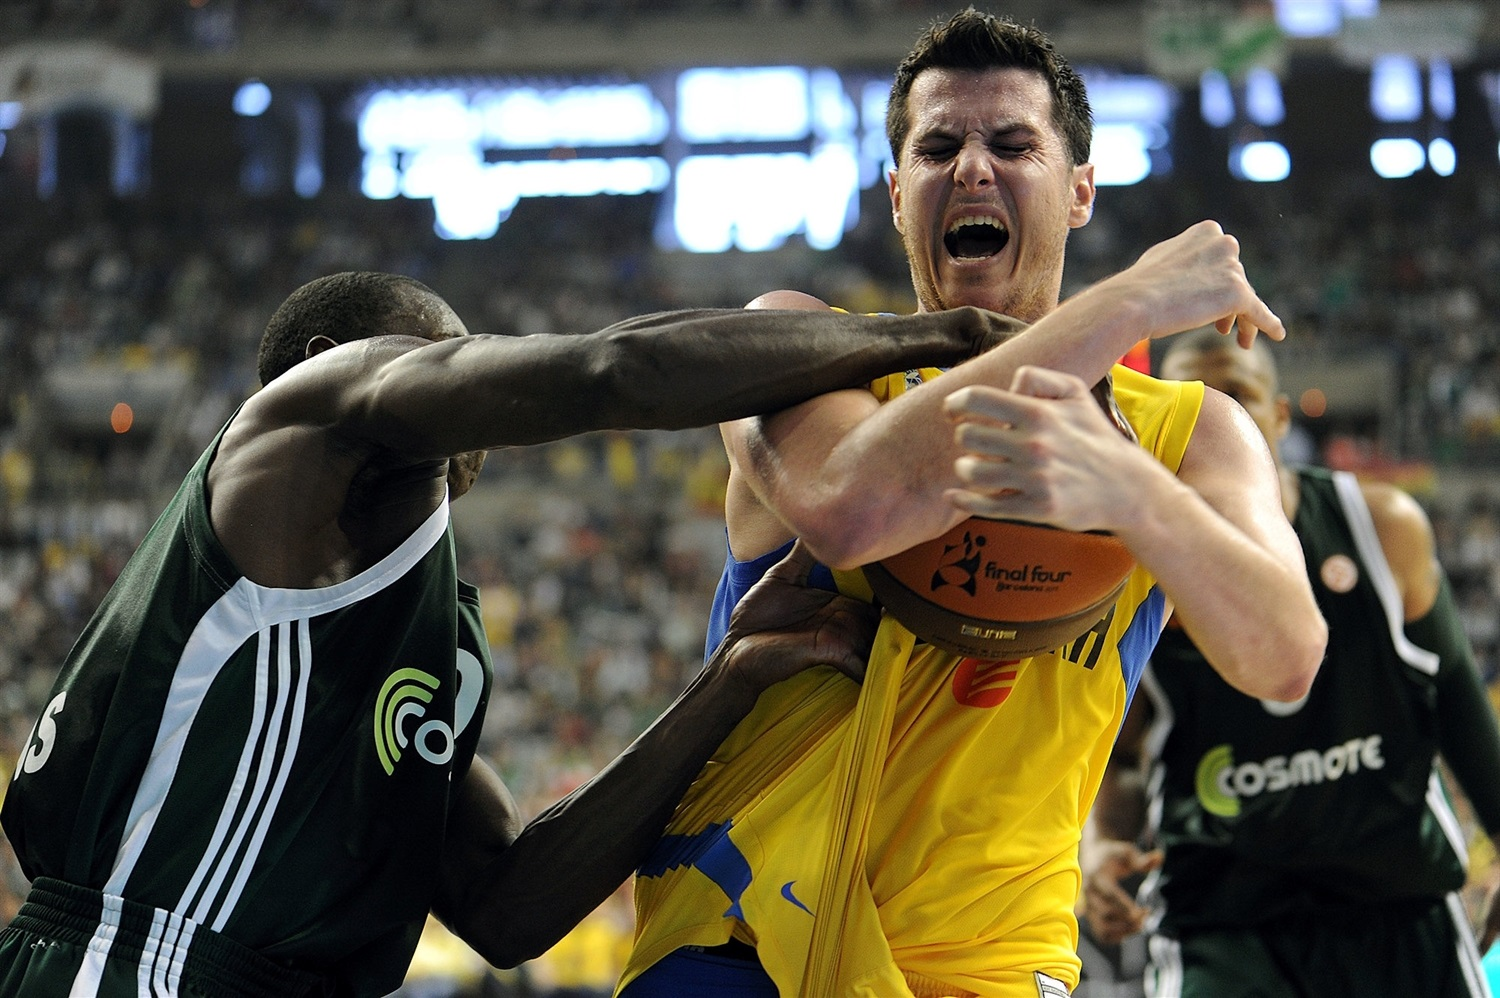 Guy Pnini - Maccabi Electra Tel Aviv - Final Four Barcelona 2011 - EB10